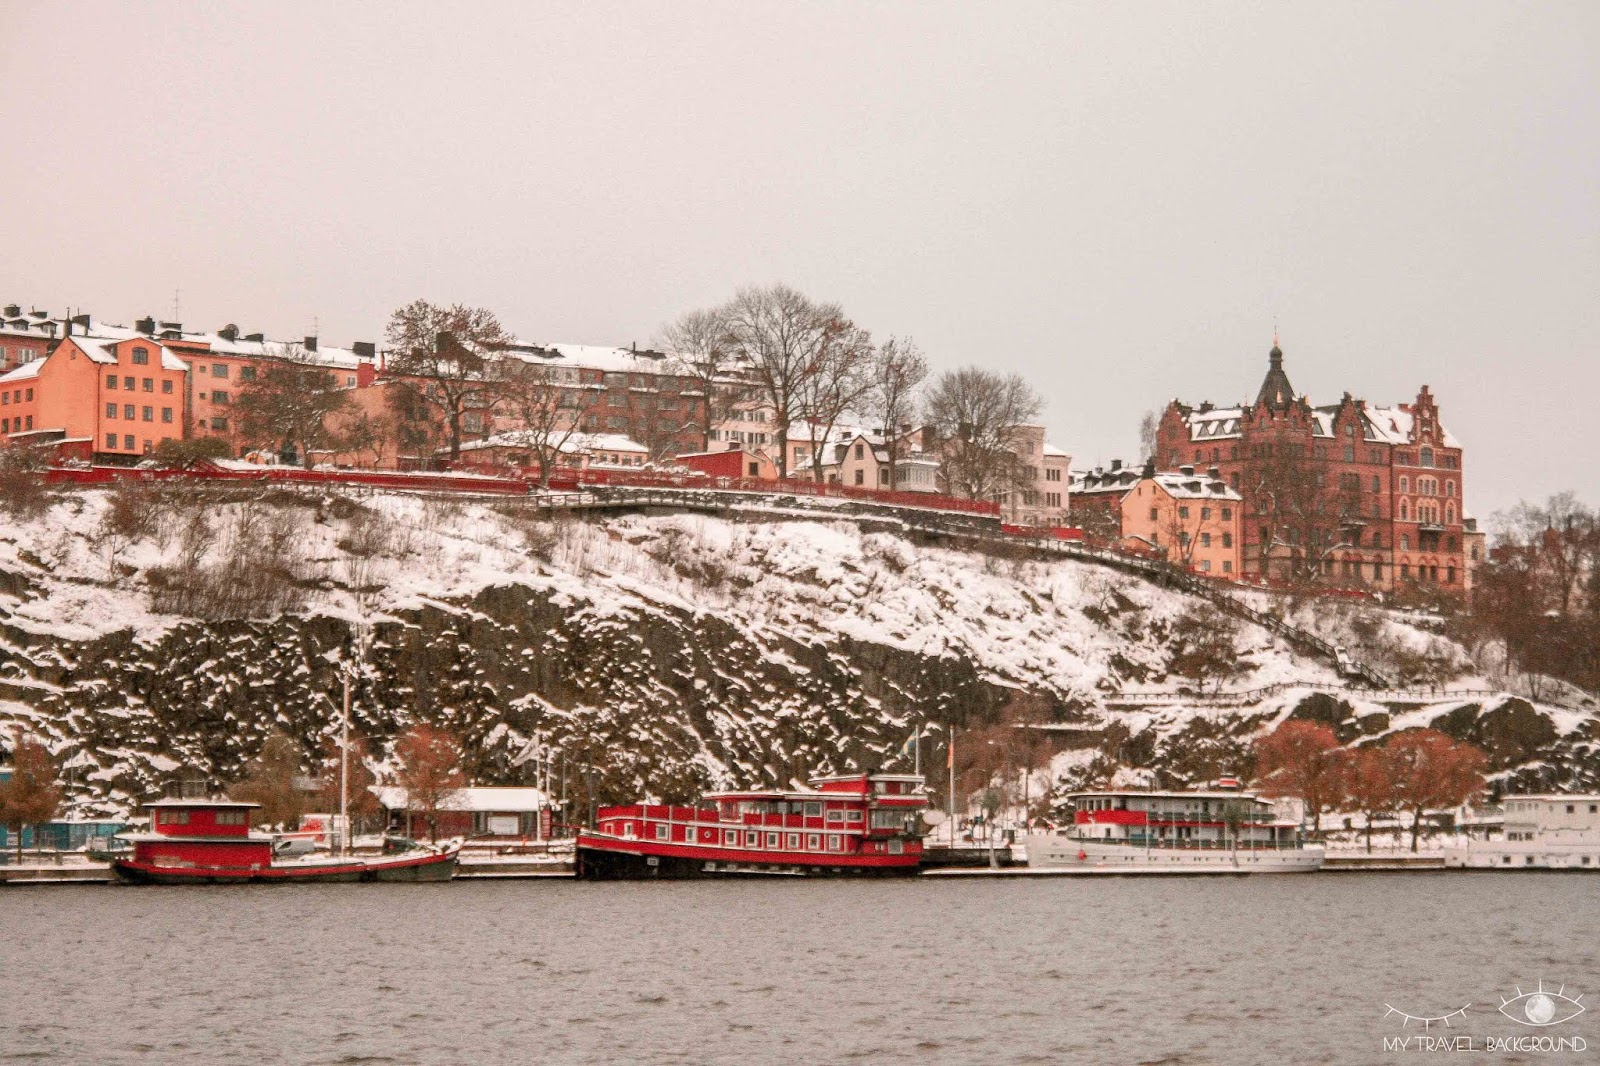 My Travel Background : Visiter Stockholm, mes immanquables